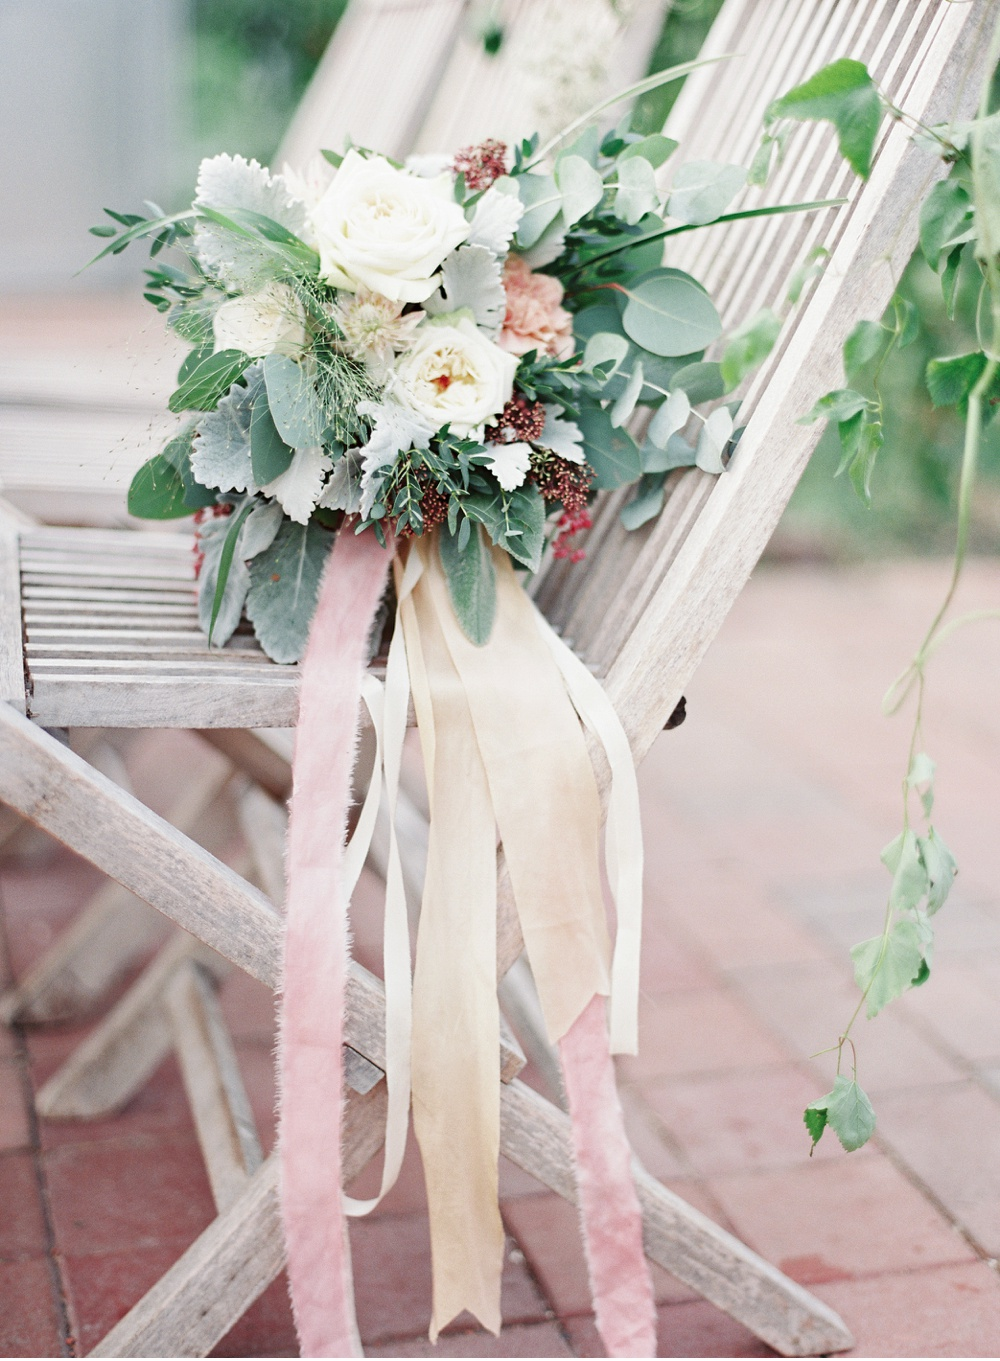 Greenhouse_wedding_inspiration©MadalinaSheldon_0005.jpg